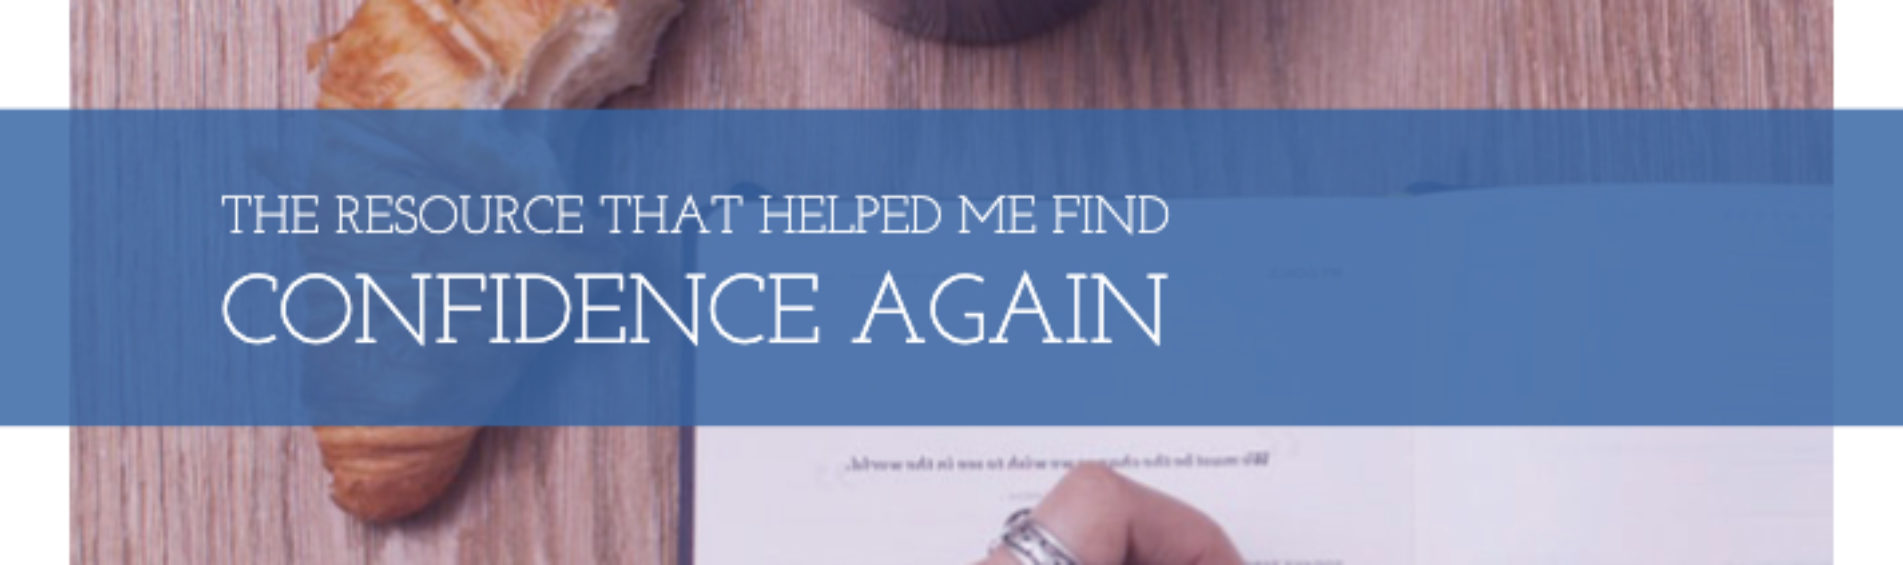 The Resource that Helped me Find Confidence Again